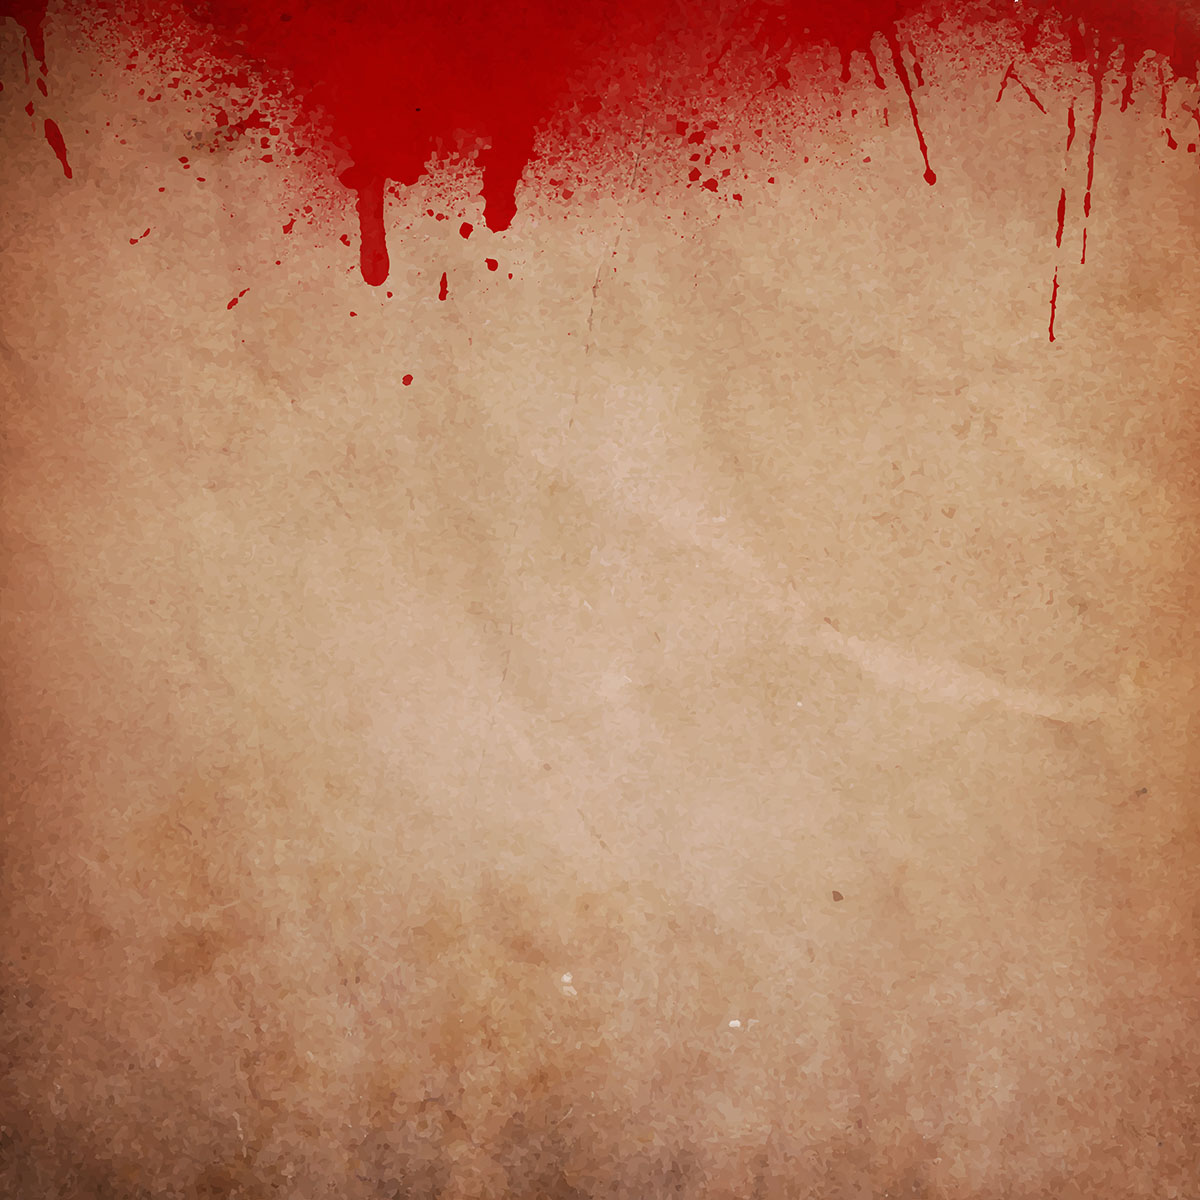 Blood Splattered Grunge Background Download Free Vectors Clipart Graphics Vector Art Captcha will load here (please disable ad blocker). blood splattered grunge background